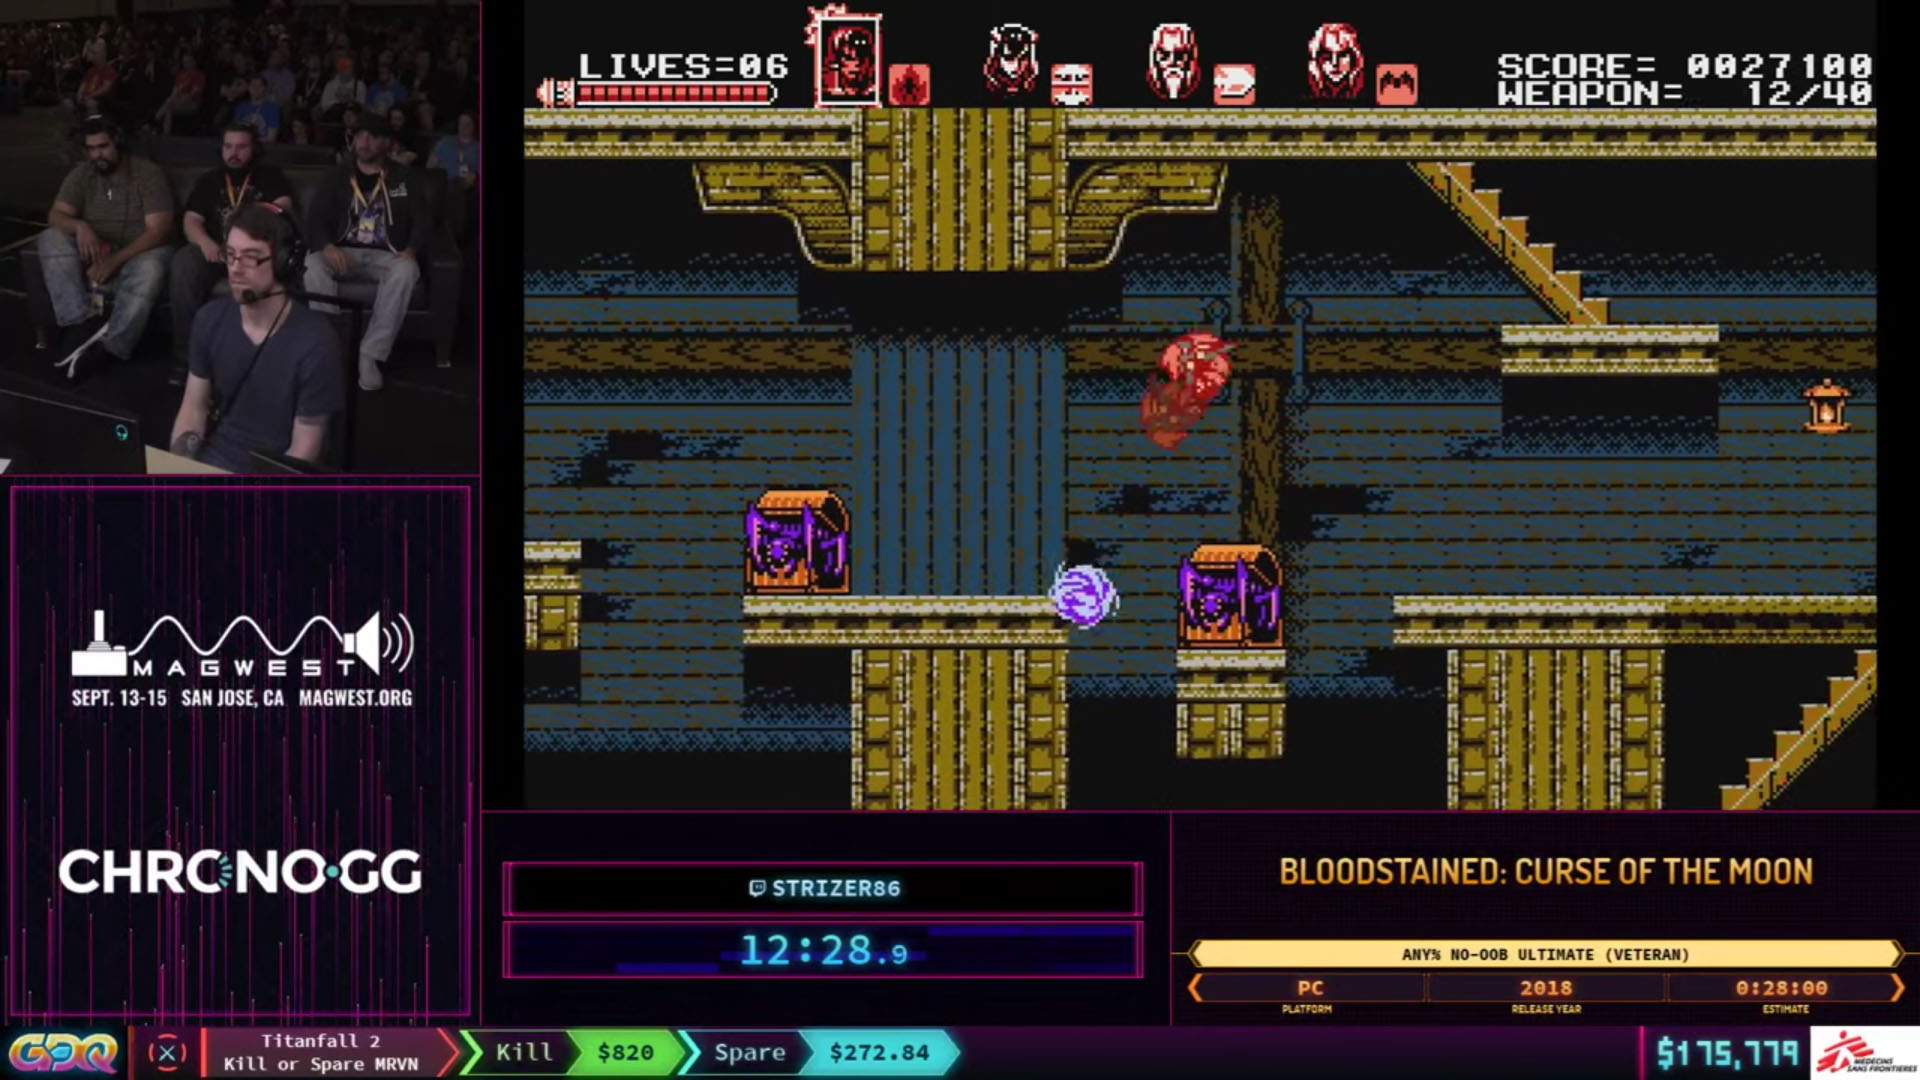 Bloodstained: Curse of the Moon Any% No OOB Ultimate Veteran